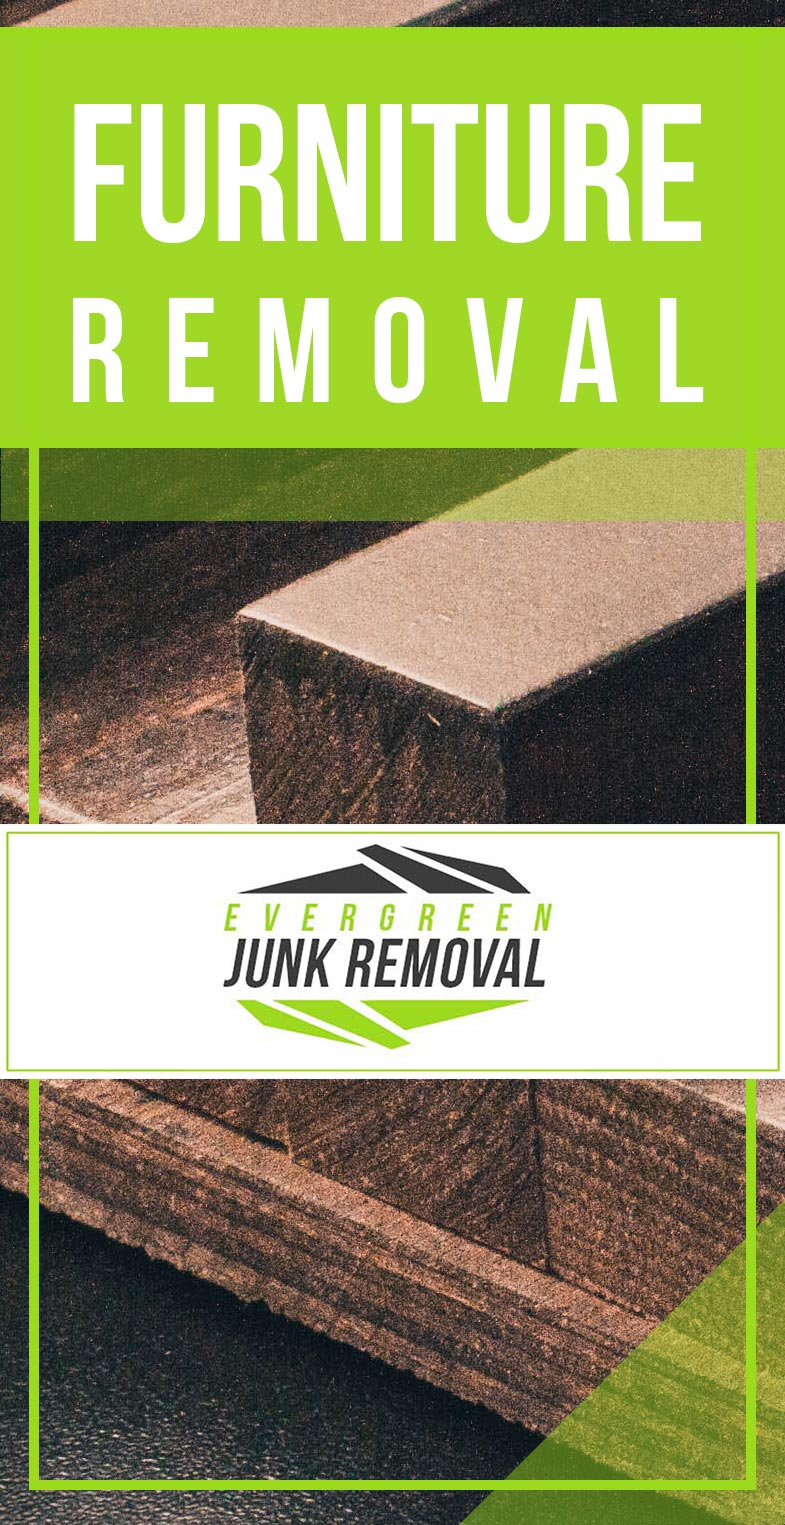 Junk Removal Belle Glade Furniture Removal